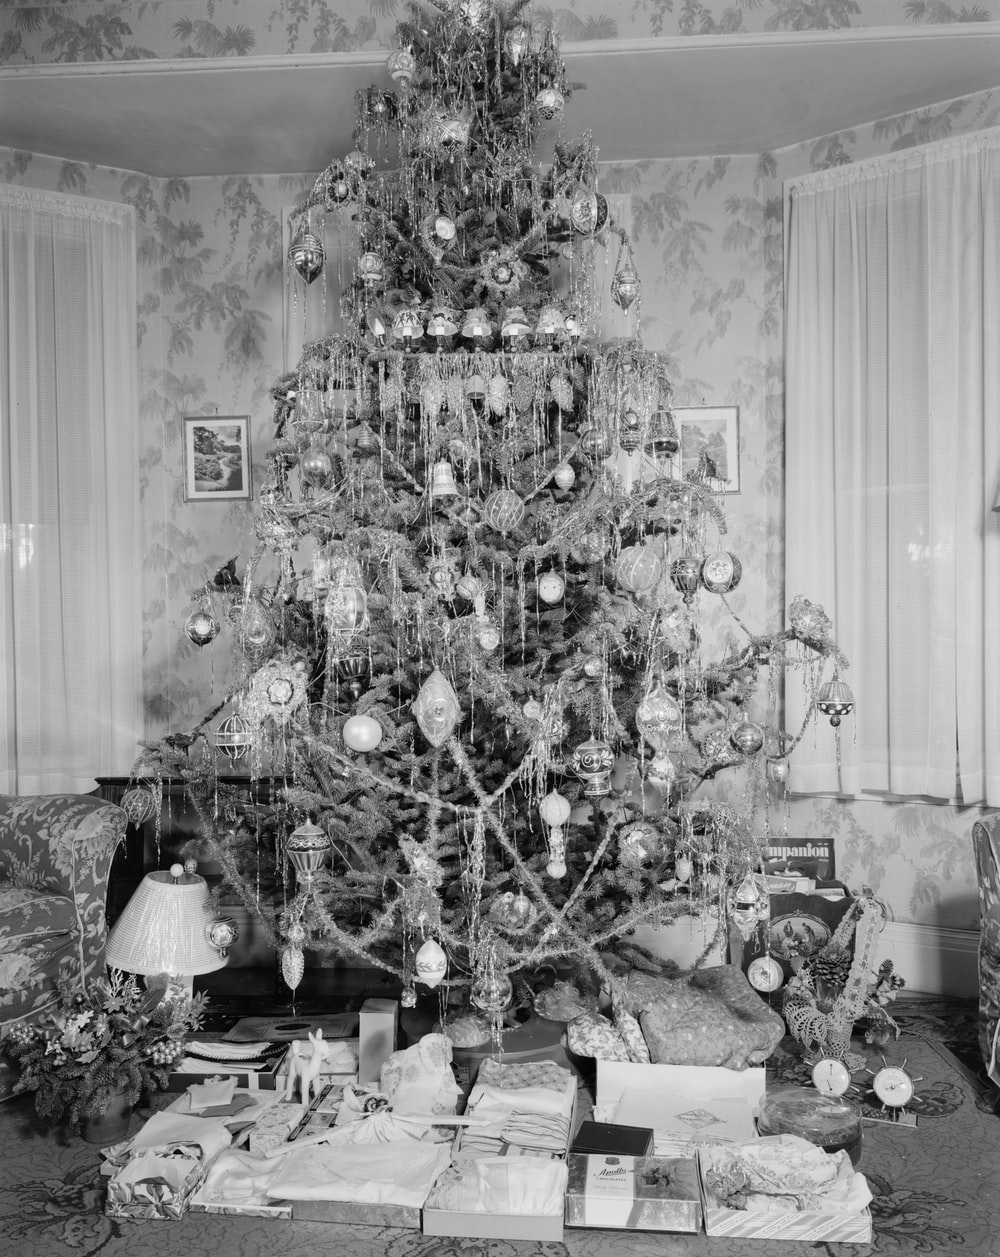 grayscale photo of hanging decor